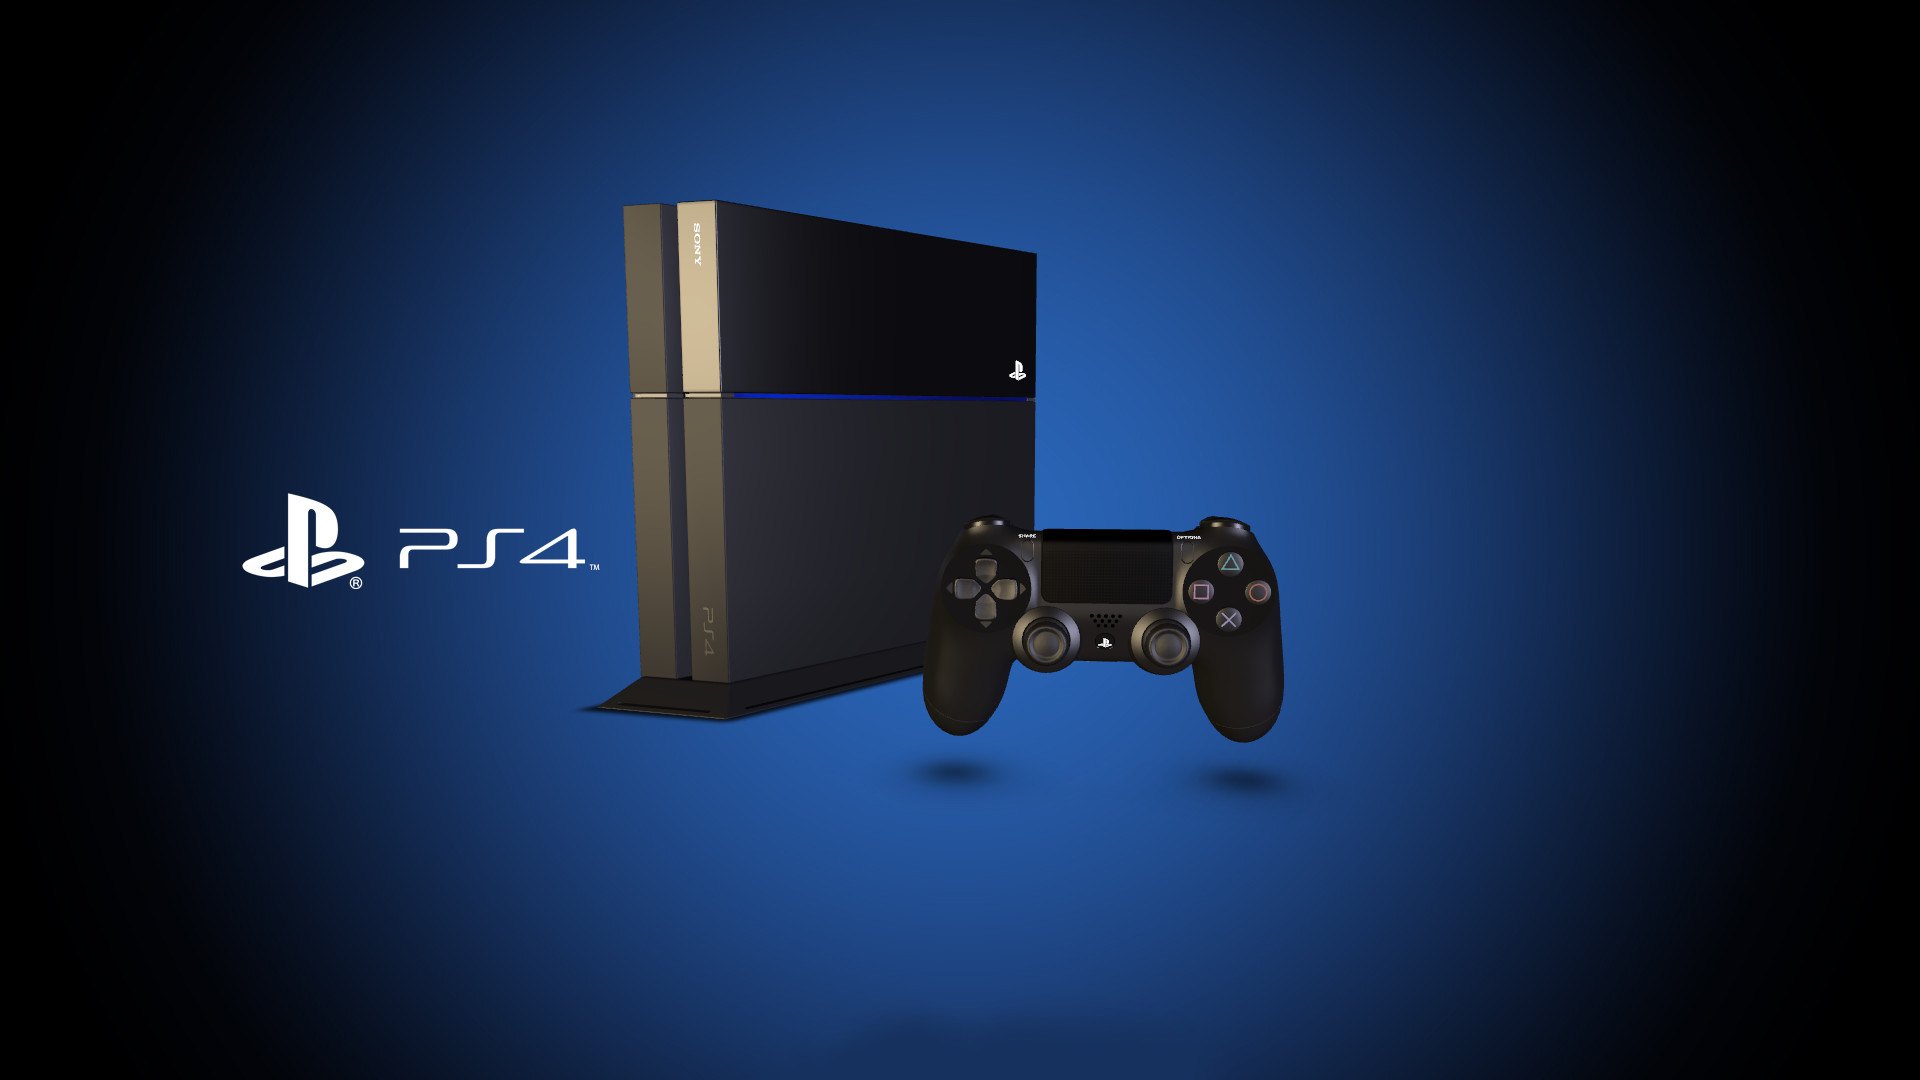 Ps4 Background Wallpaper 83 Images